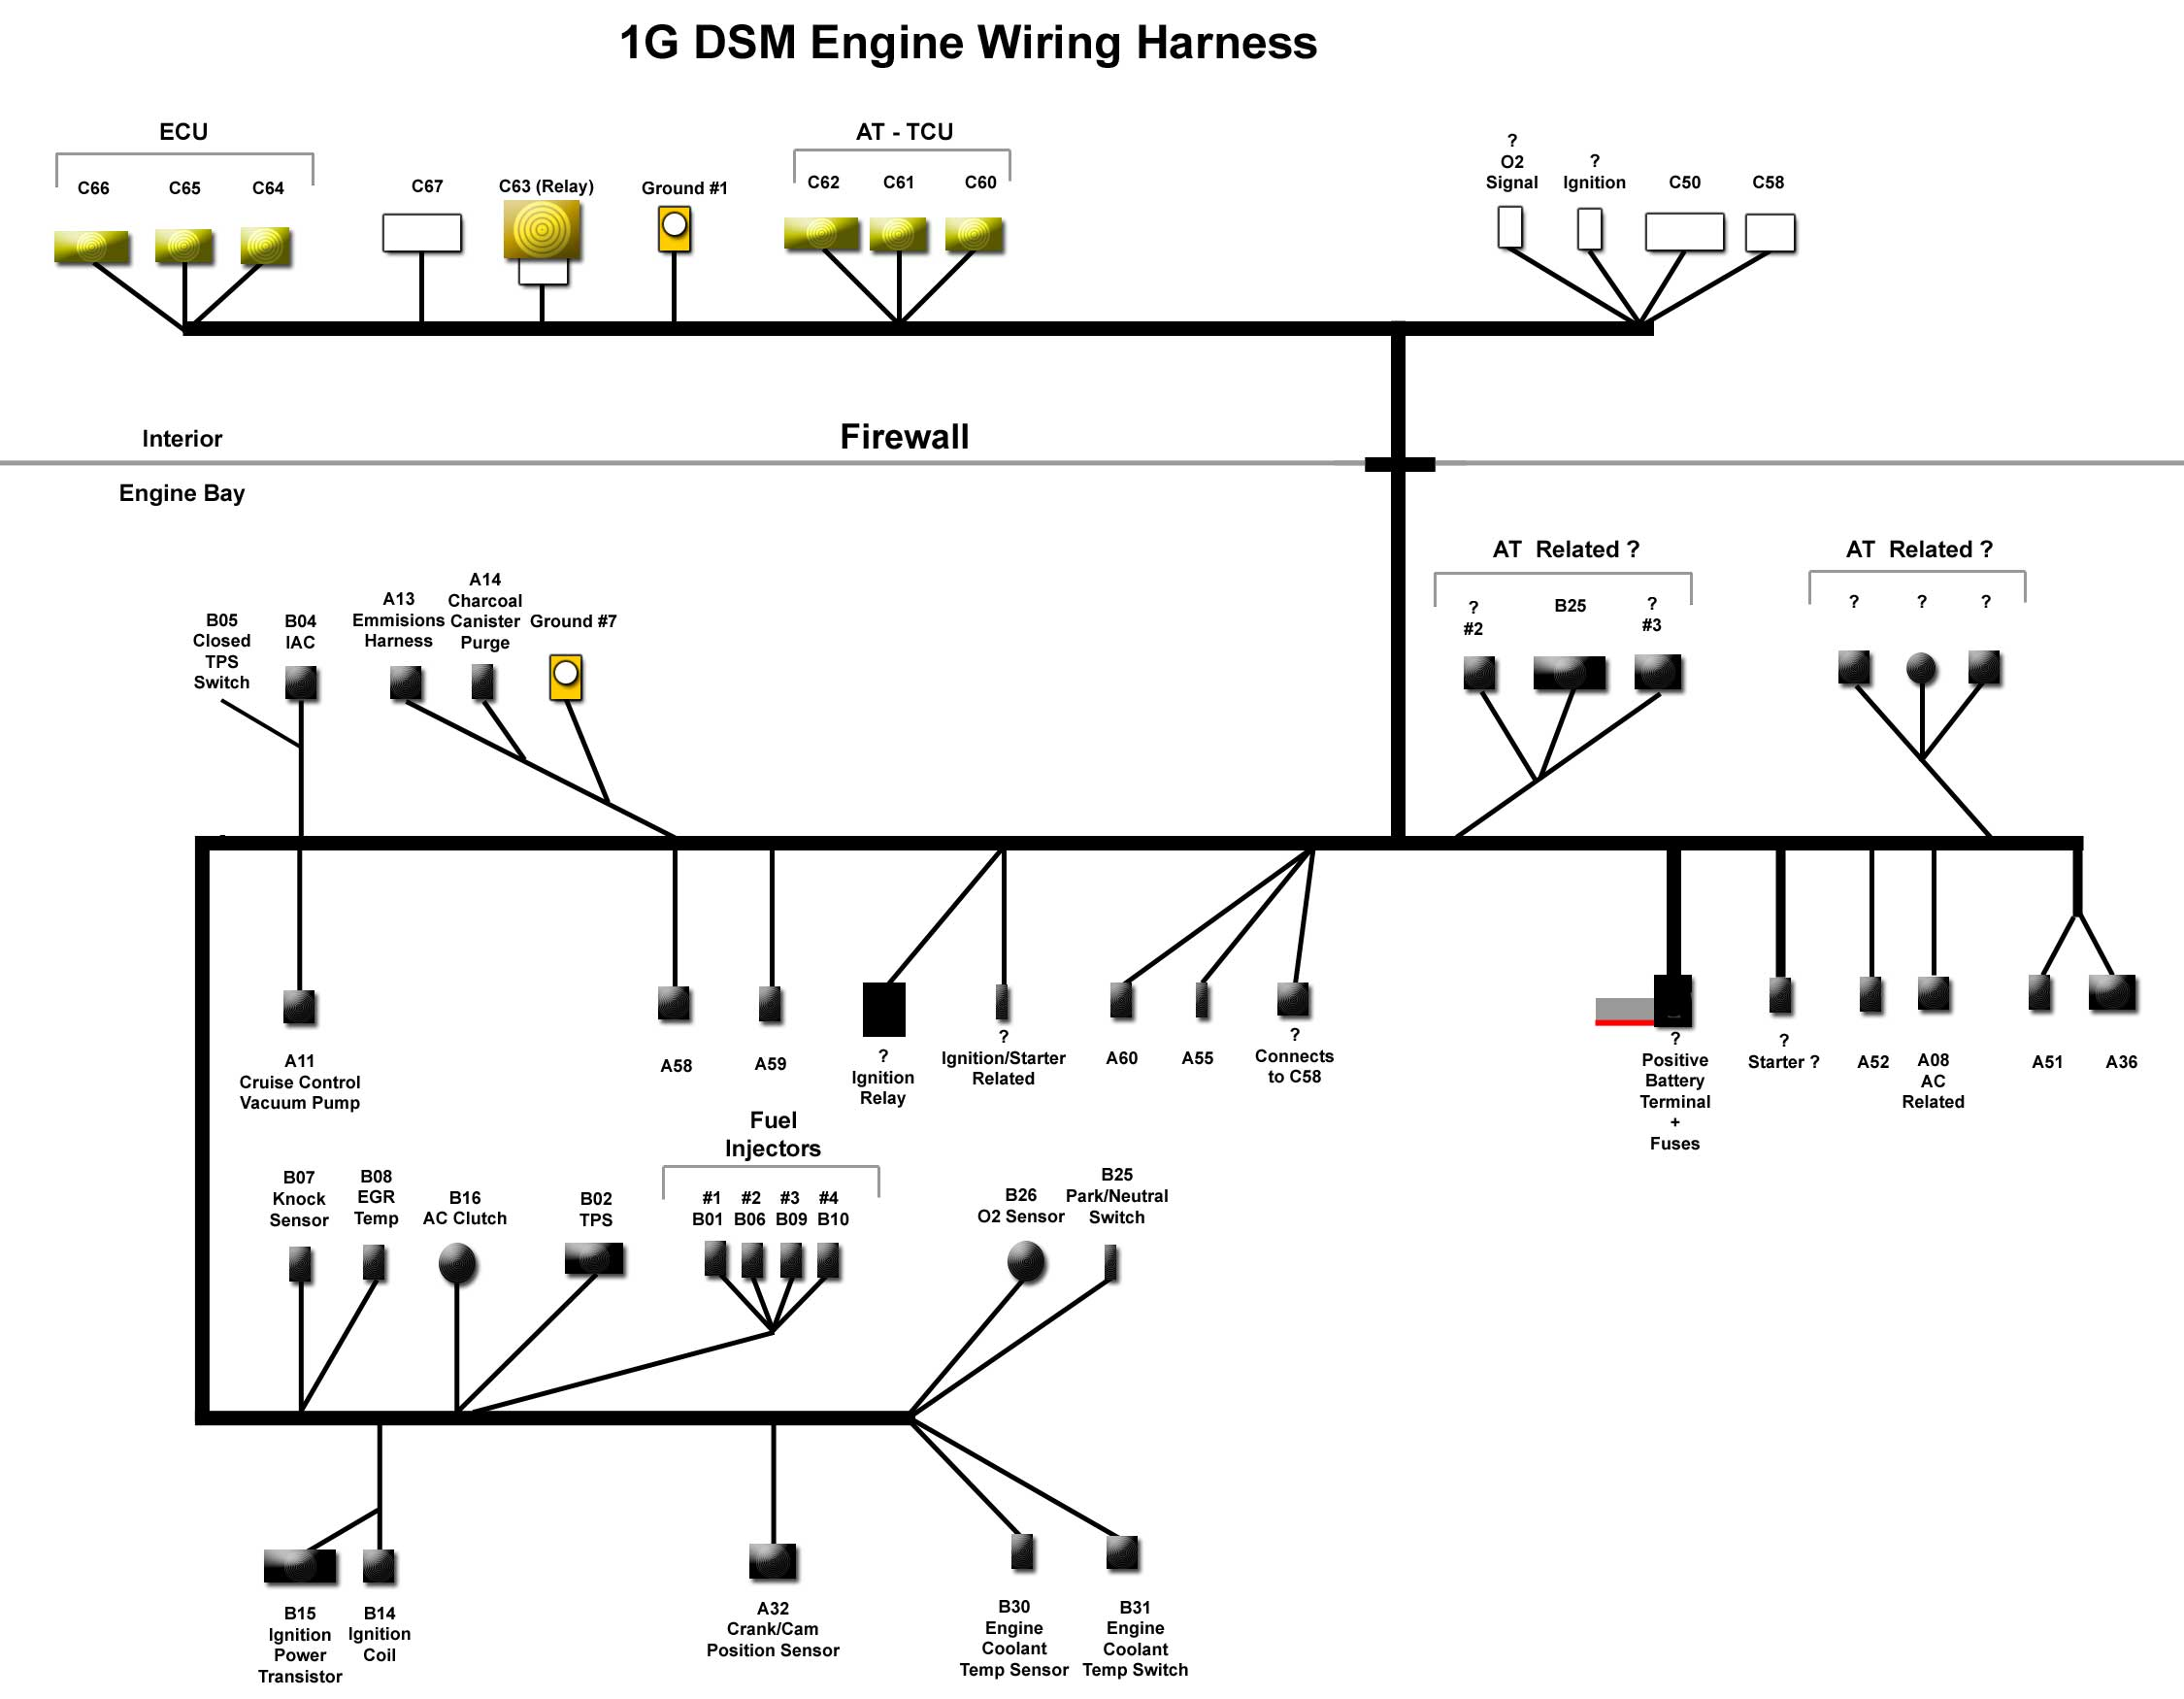 1G DSM EngineHarness wiring harness diagram jeep liberty wiring harness diagram what is an engine wiring harness at honlapkeszites.co